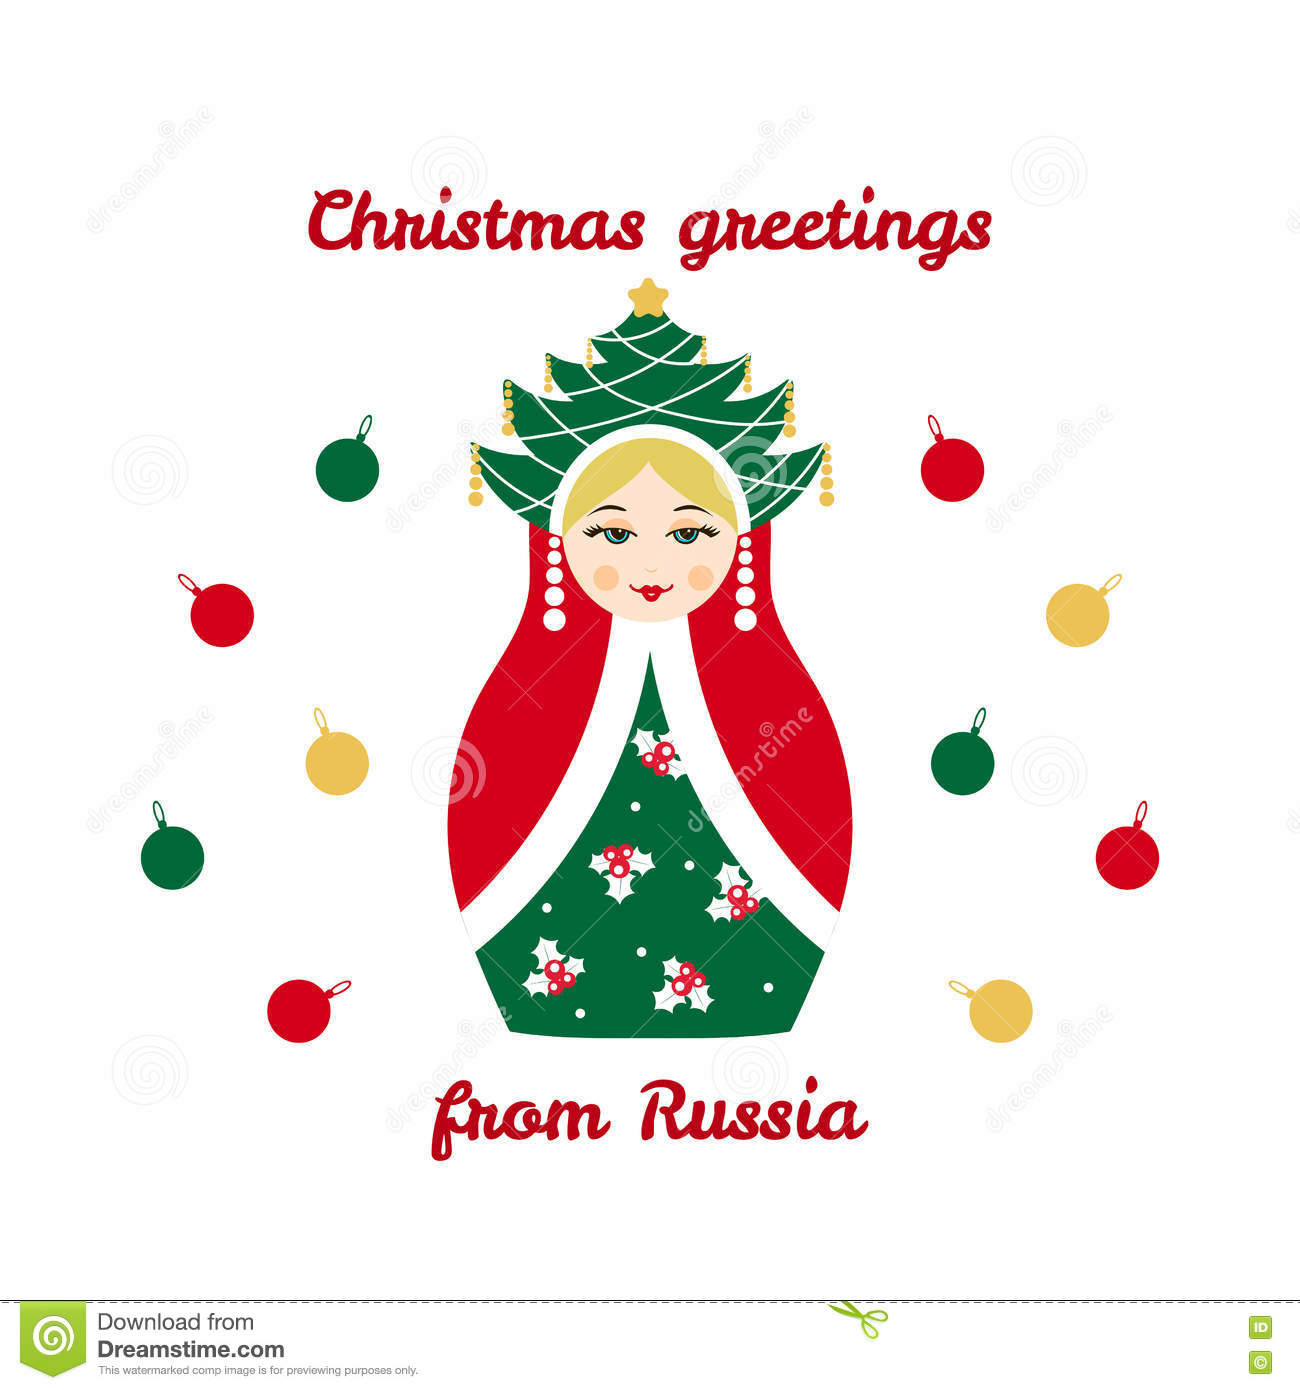 christmas greetings from russia card with russian traditional wooden toy